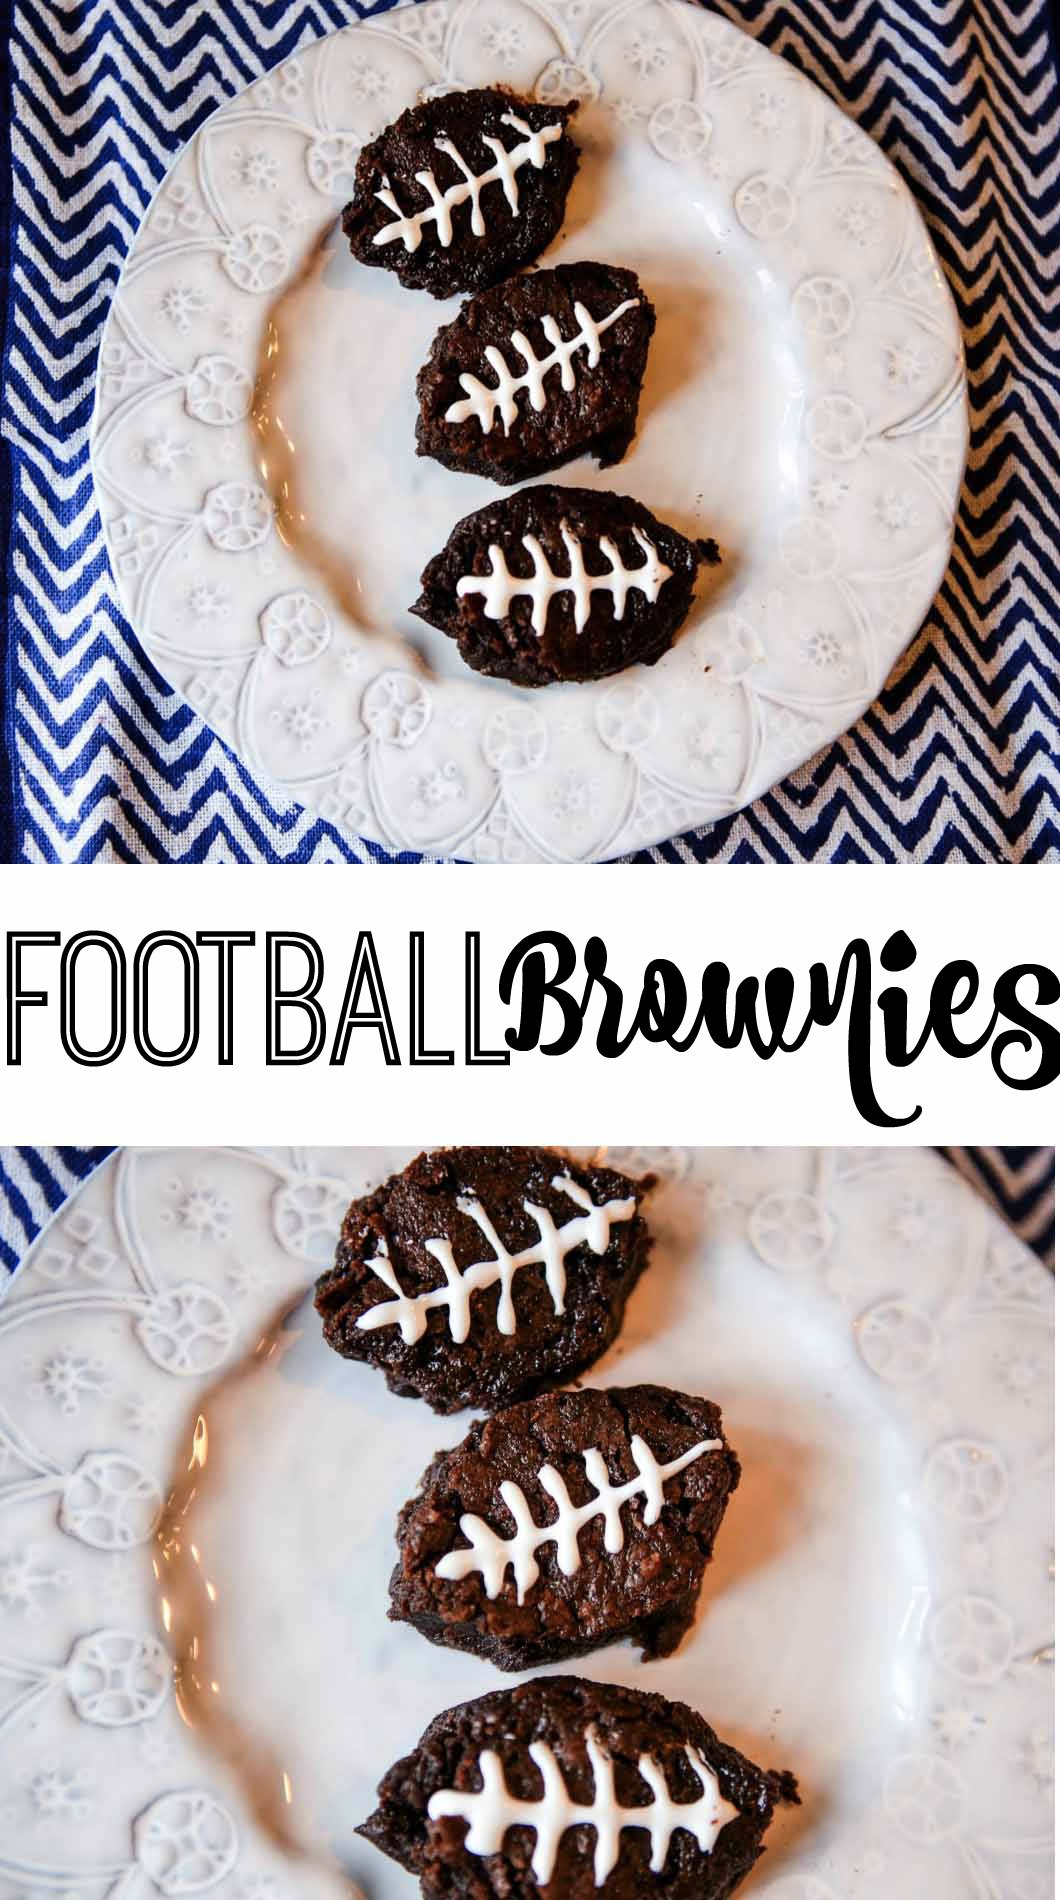 Football Brownies for the Super Bowl with fairlife Ultra-Filtered Milk by Atlanta style blogger Happily Hughes